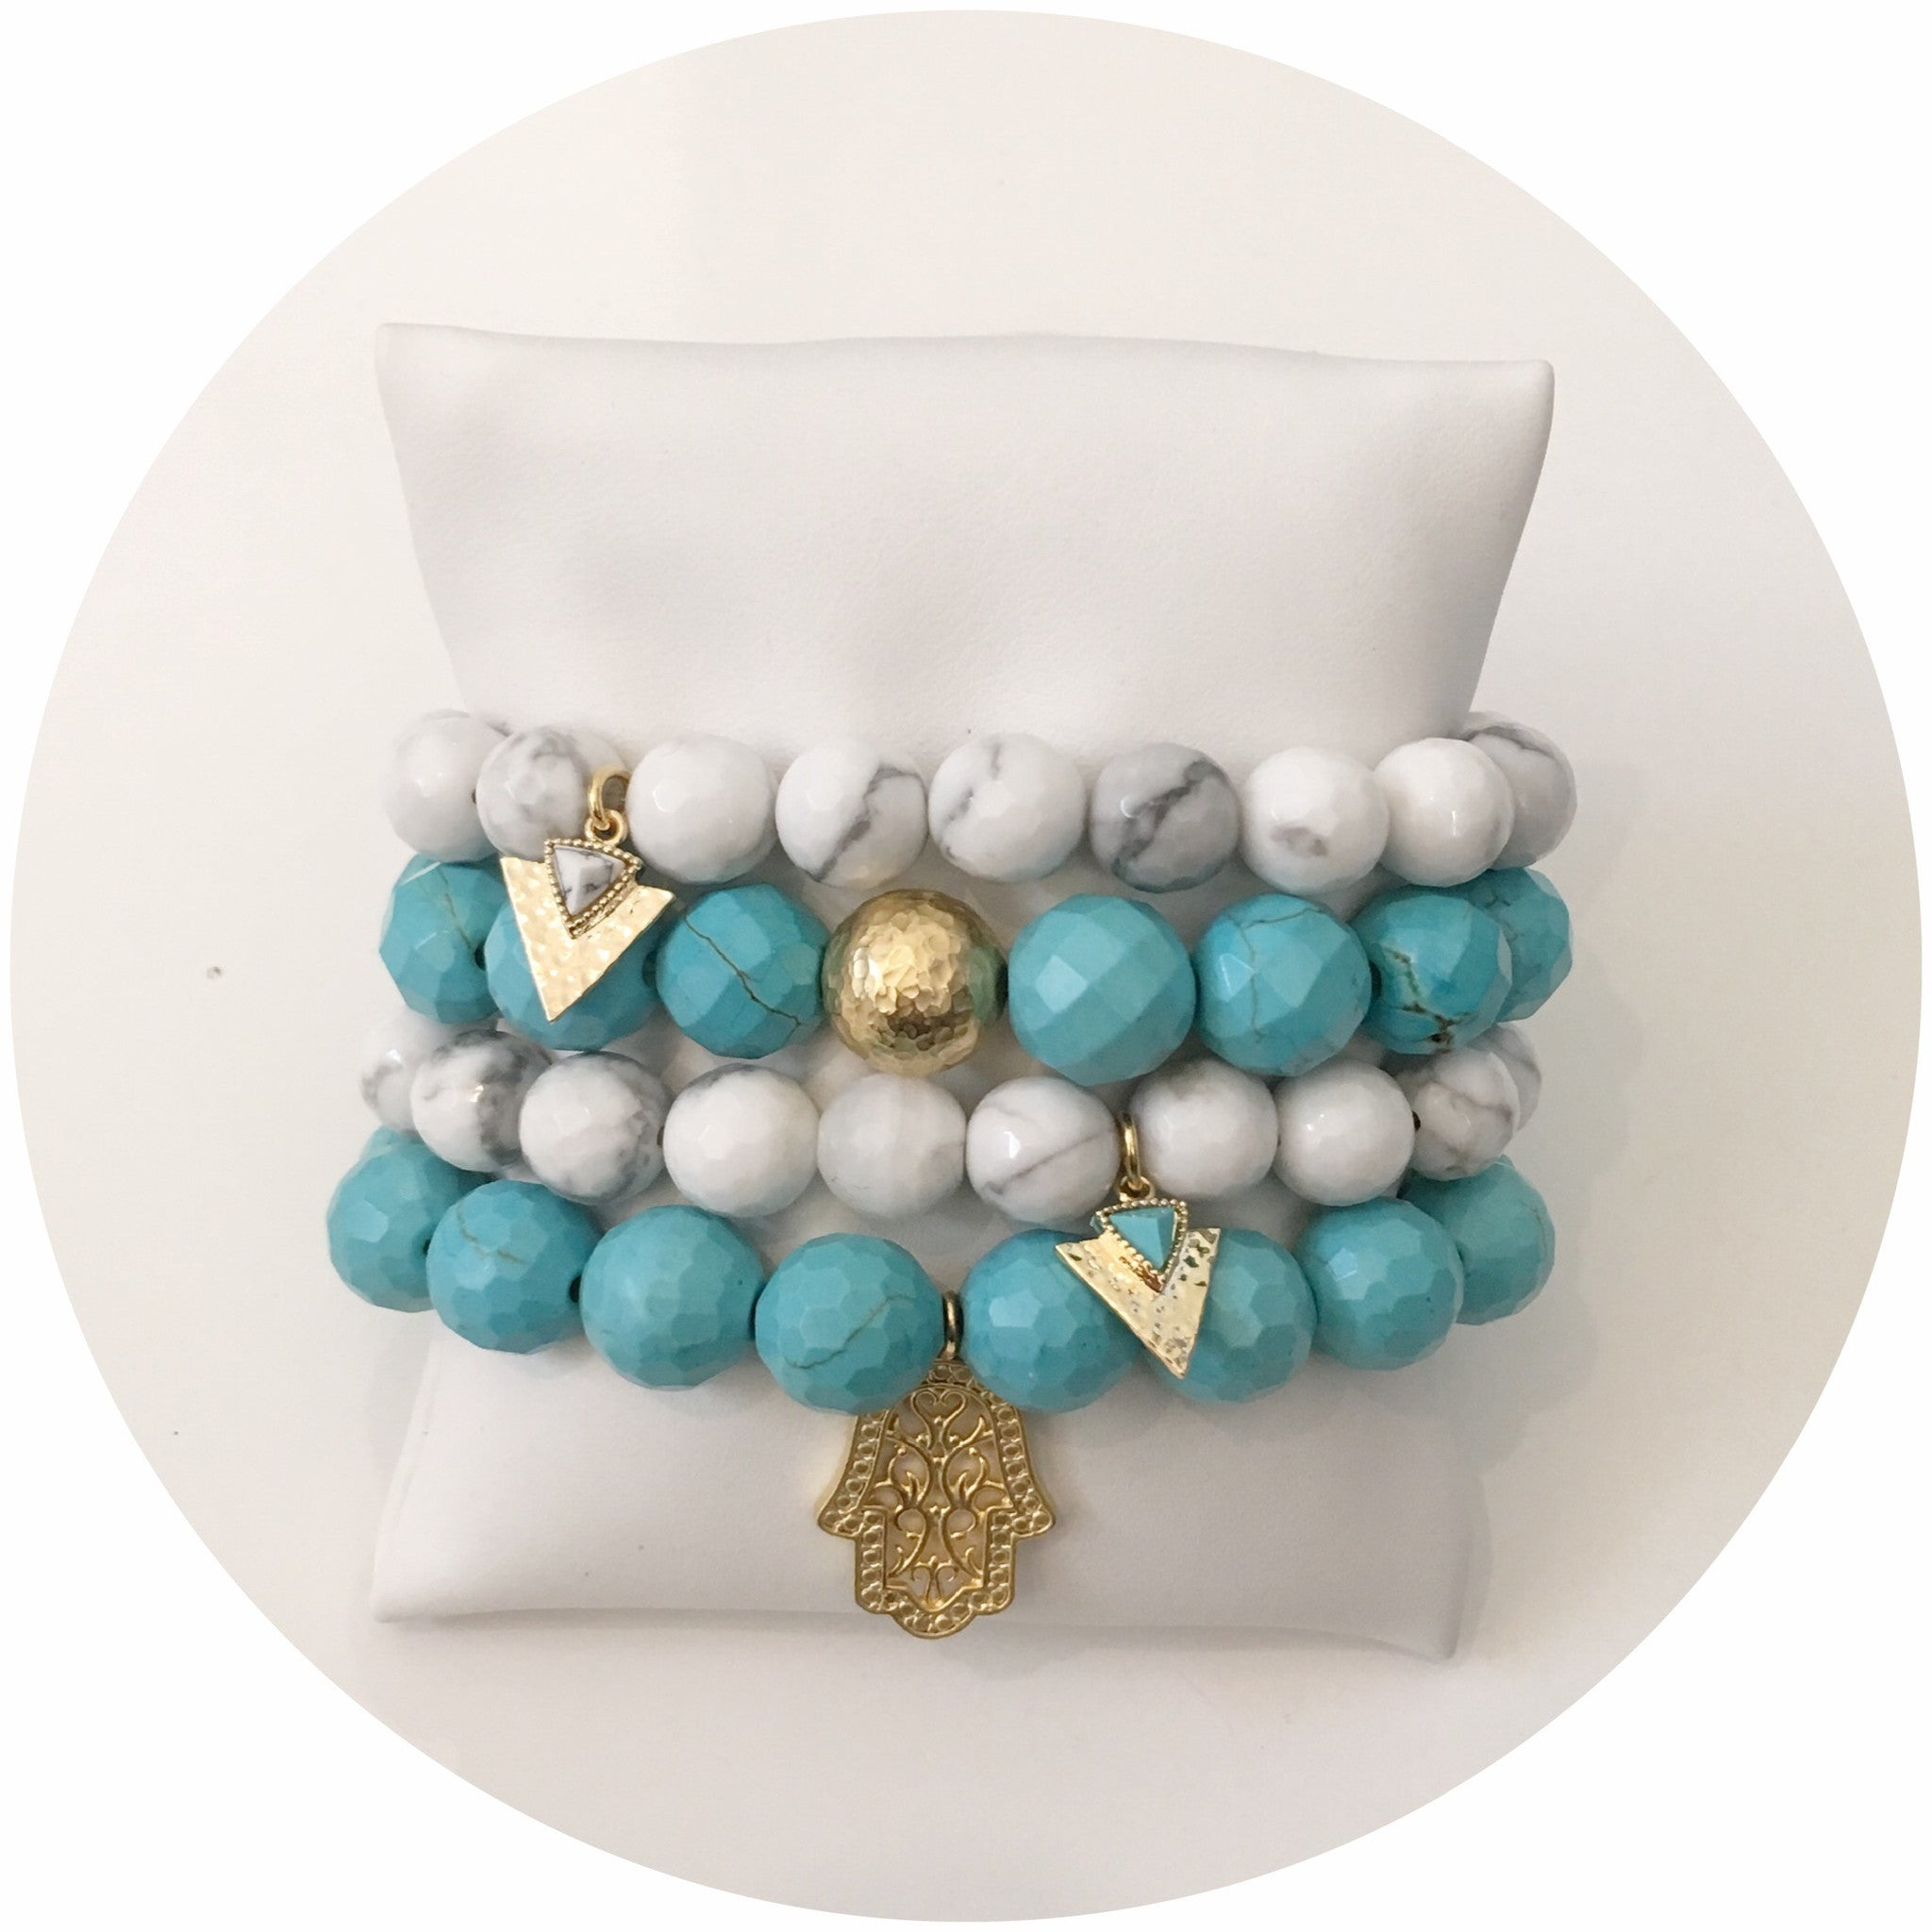 Light Turquoise Magnesite with Hammered Gold Accent - Oriana Lamarca LLC